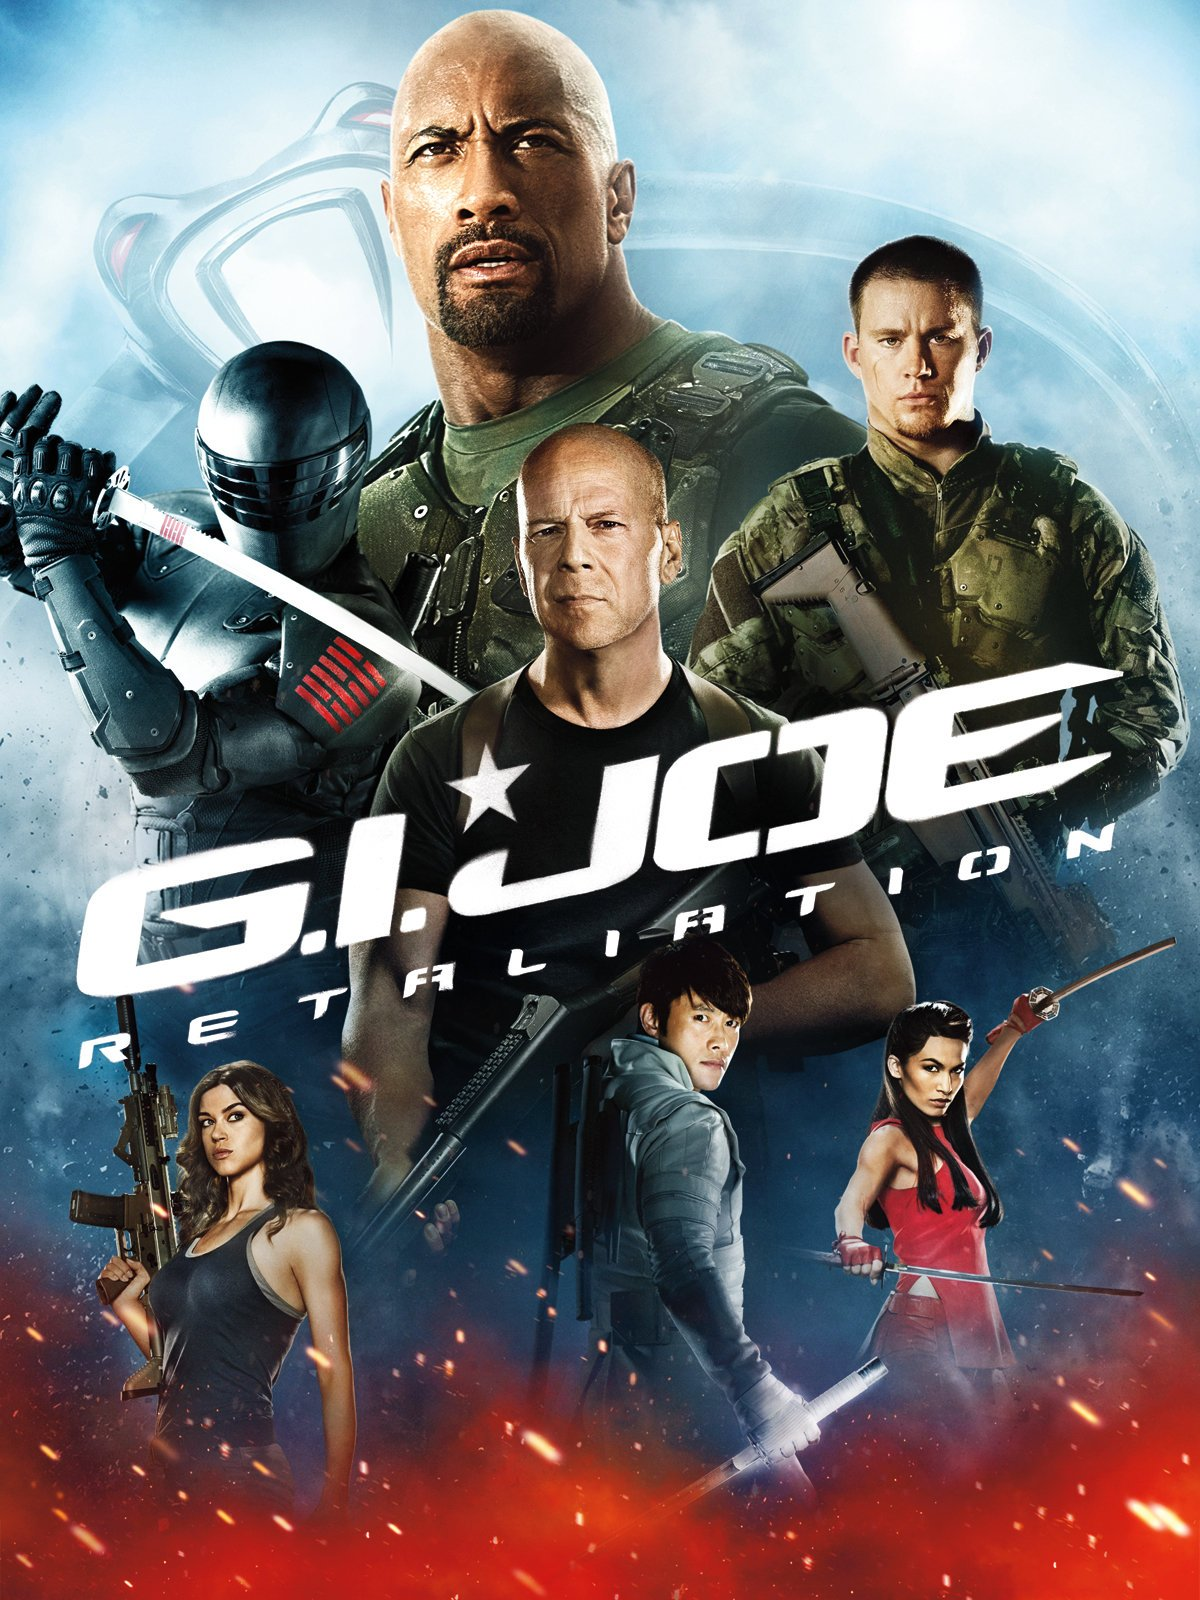 Amazon GI Joe Retaliation Bruce Willis Channing Tatum